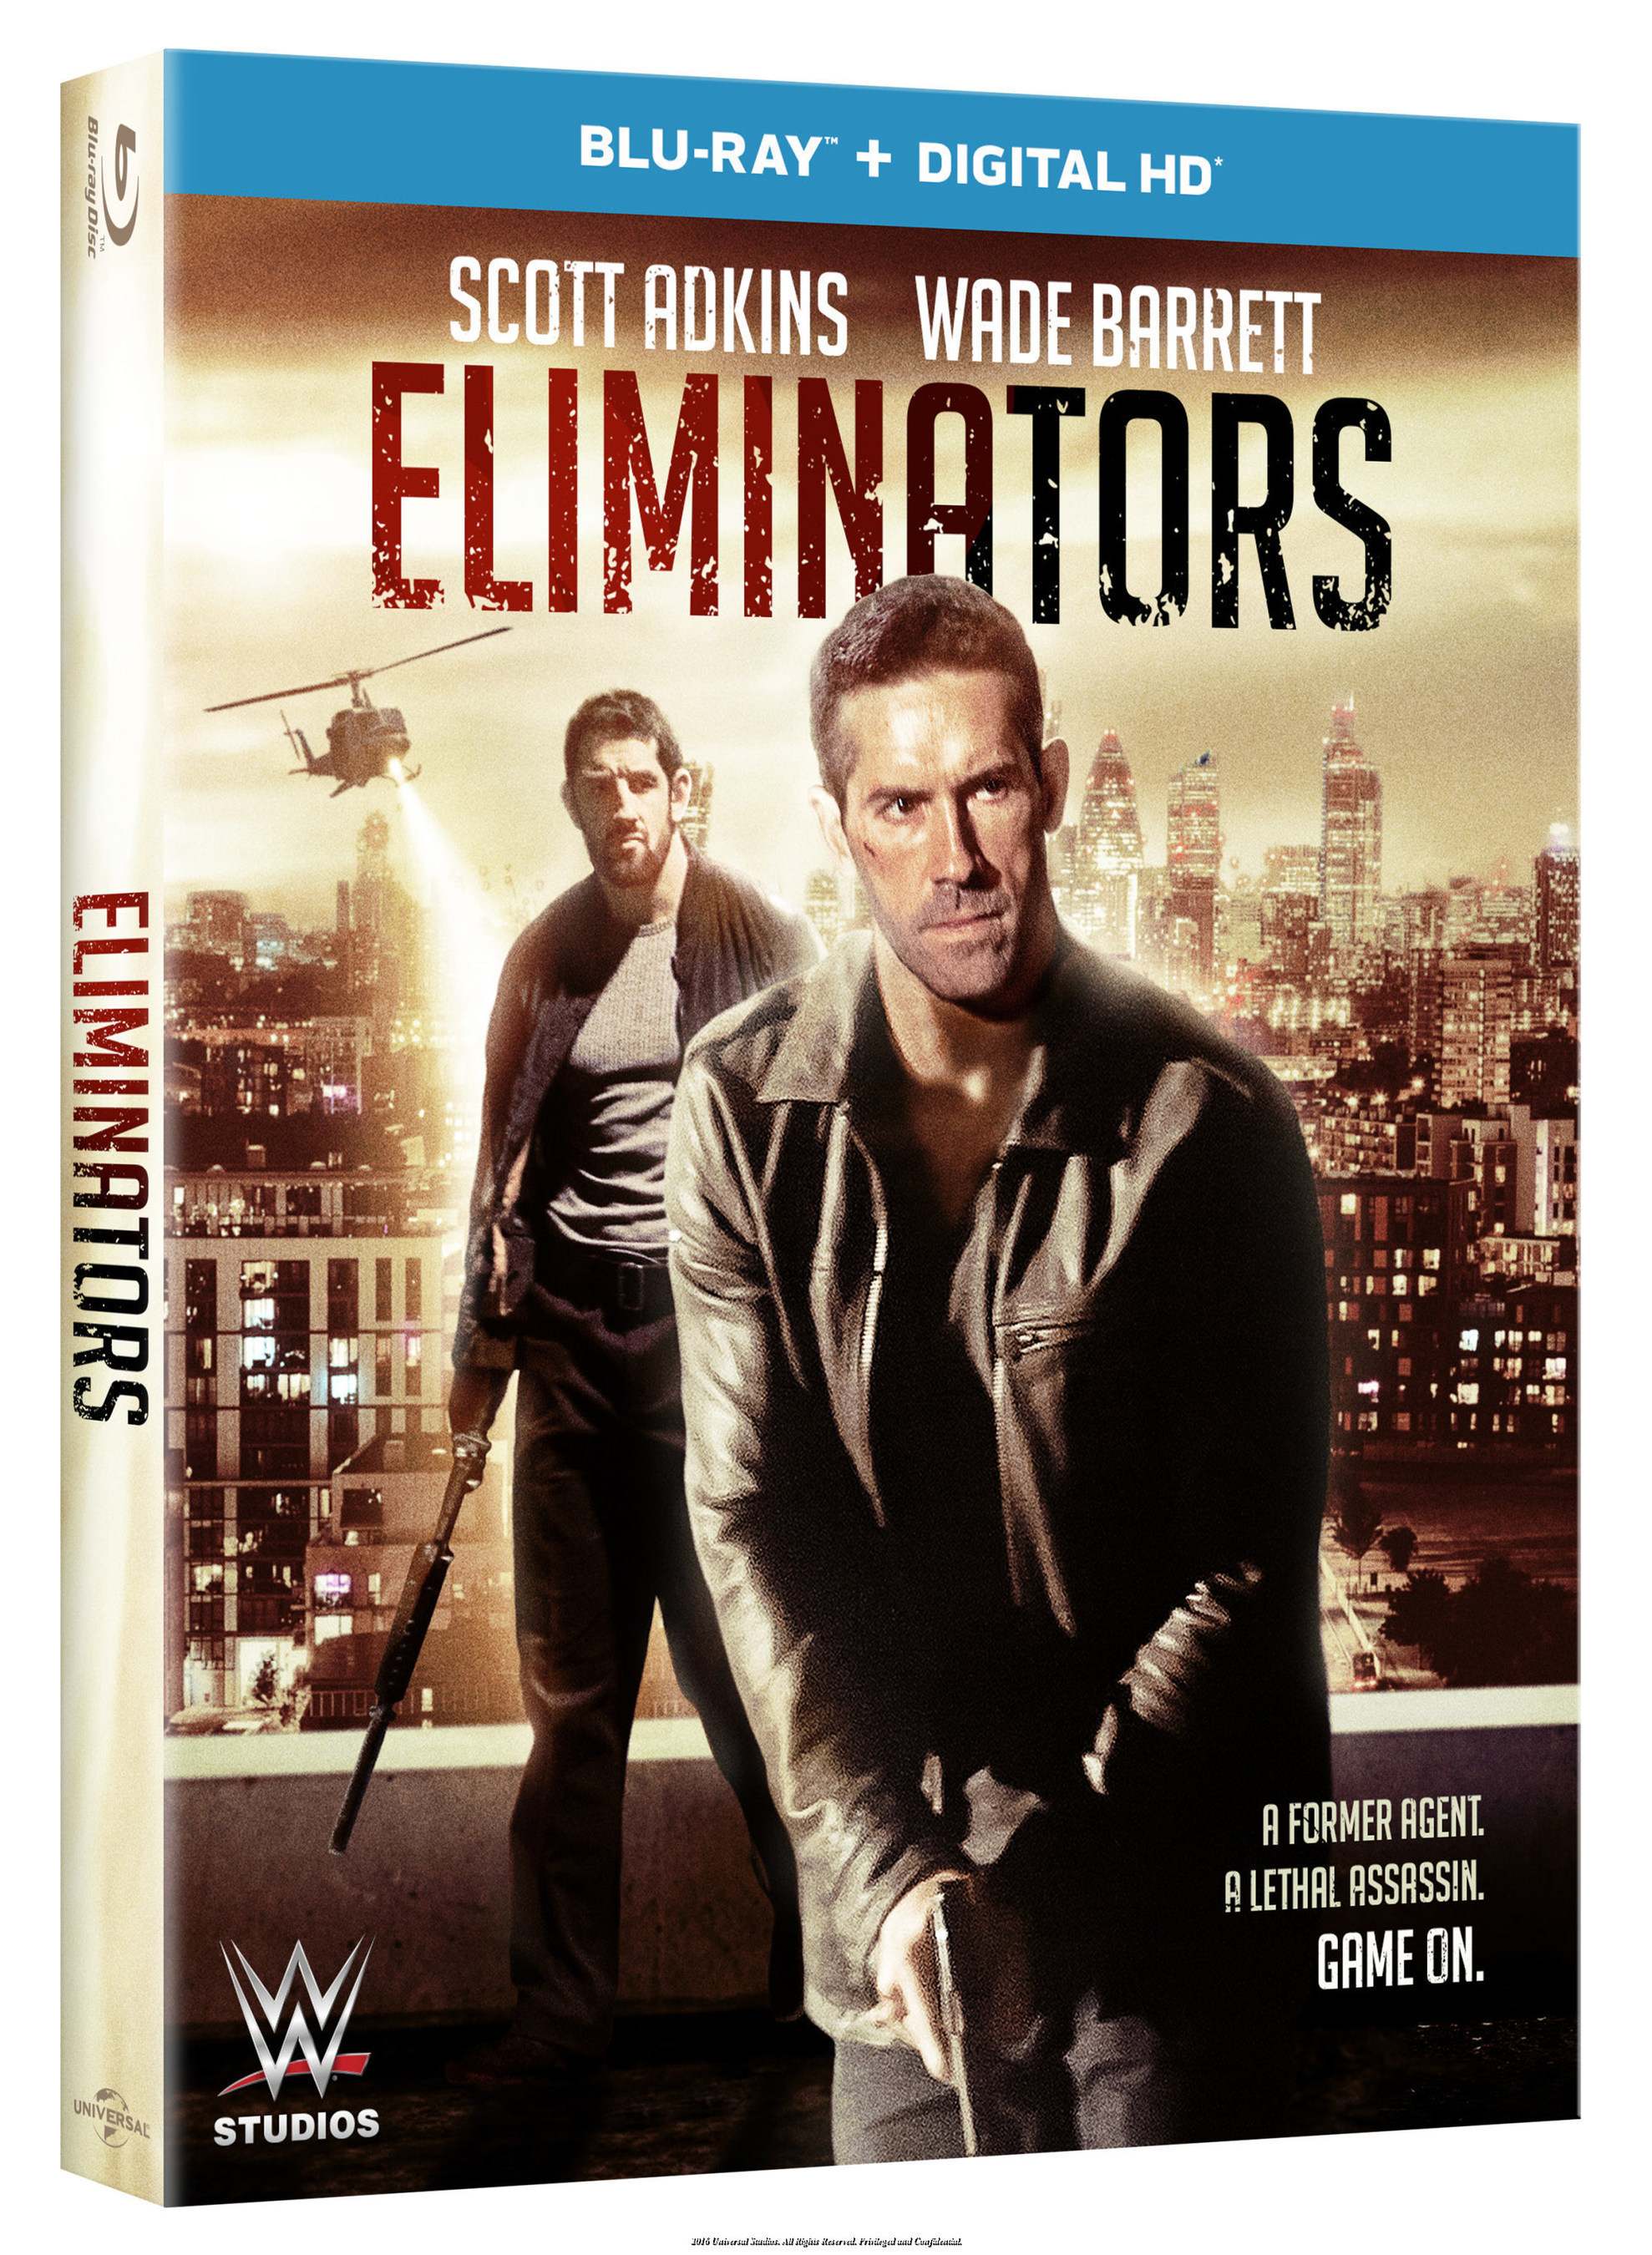 From Universal Pictures Home Entertainment And WWE' Studios: Eliminators